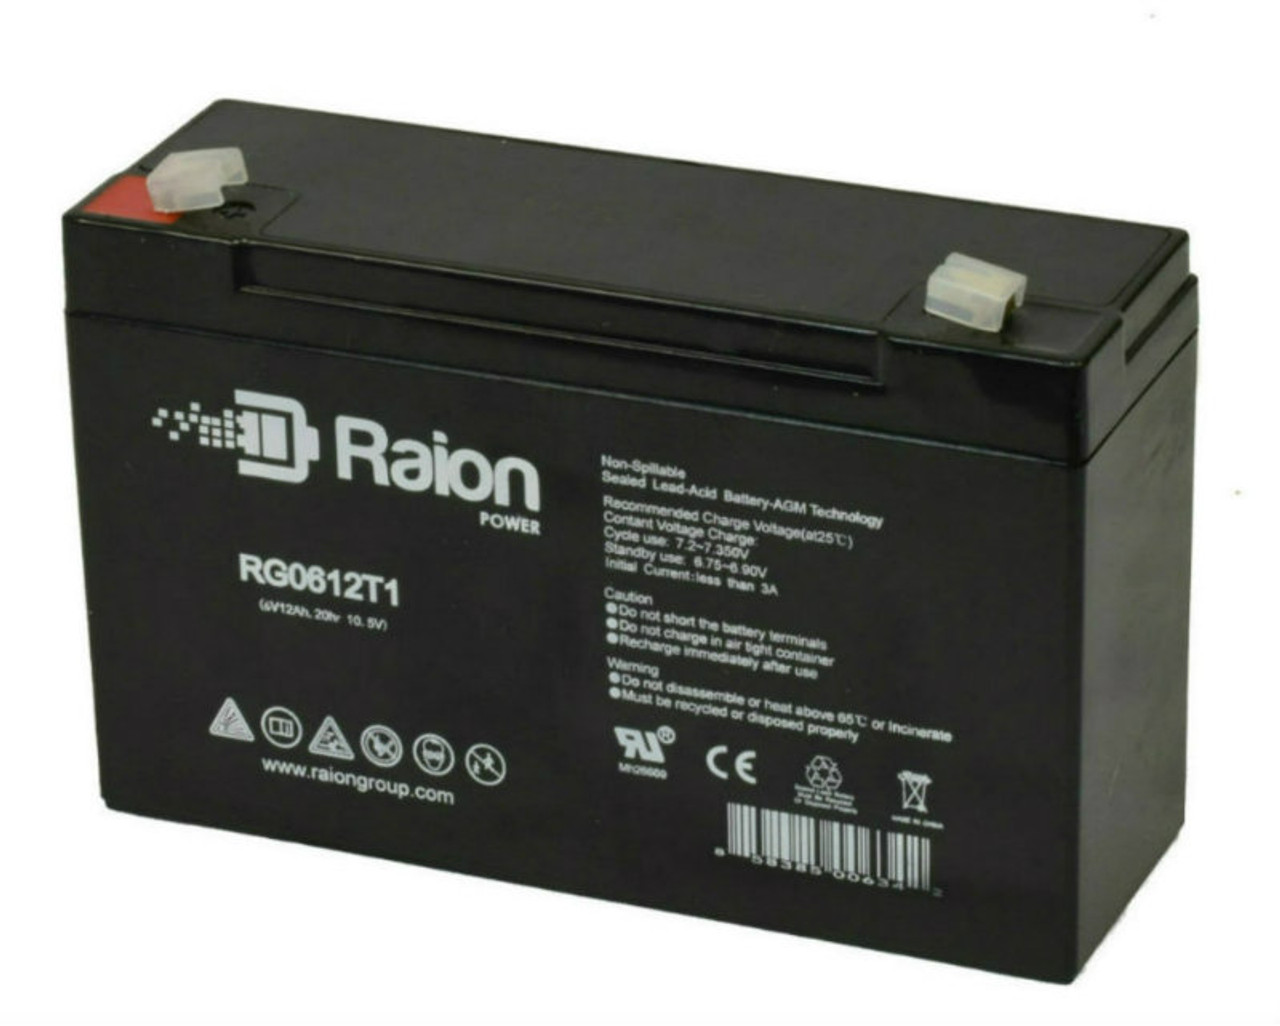 Raion Power RG06120T1 Replacement Battery Pack for Sure-Lites AA4 emergency light